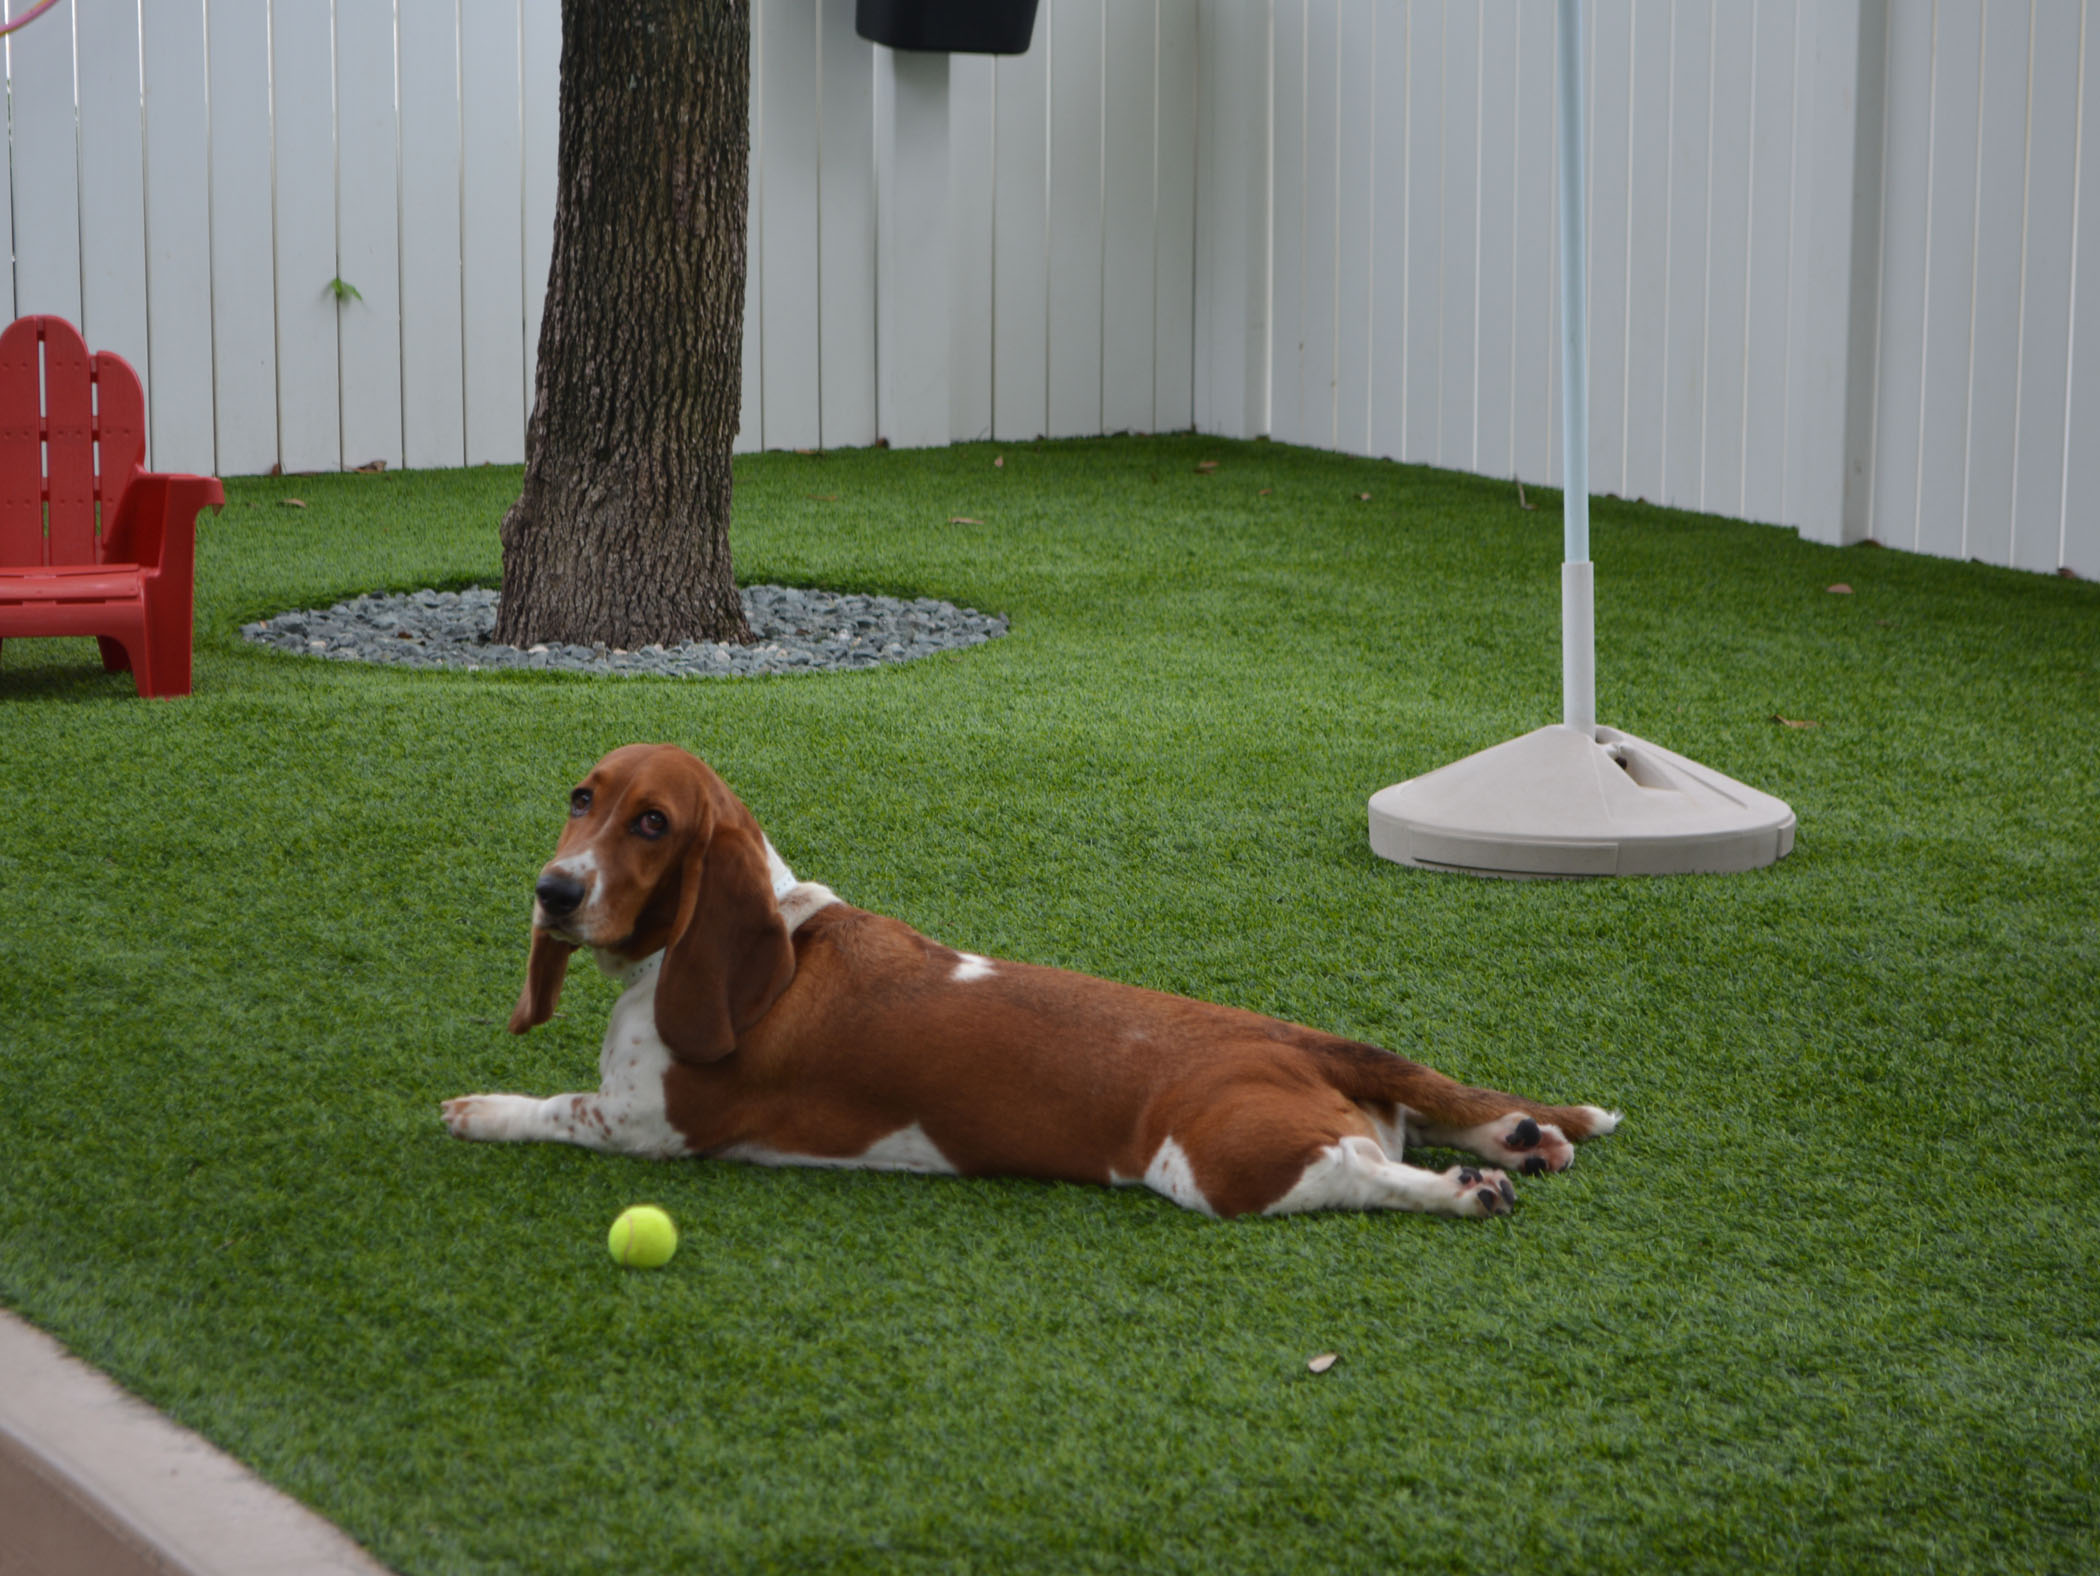 Dog Pound Artificial Grass for Dogs North Highlands, California